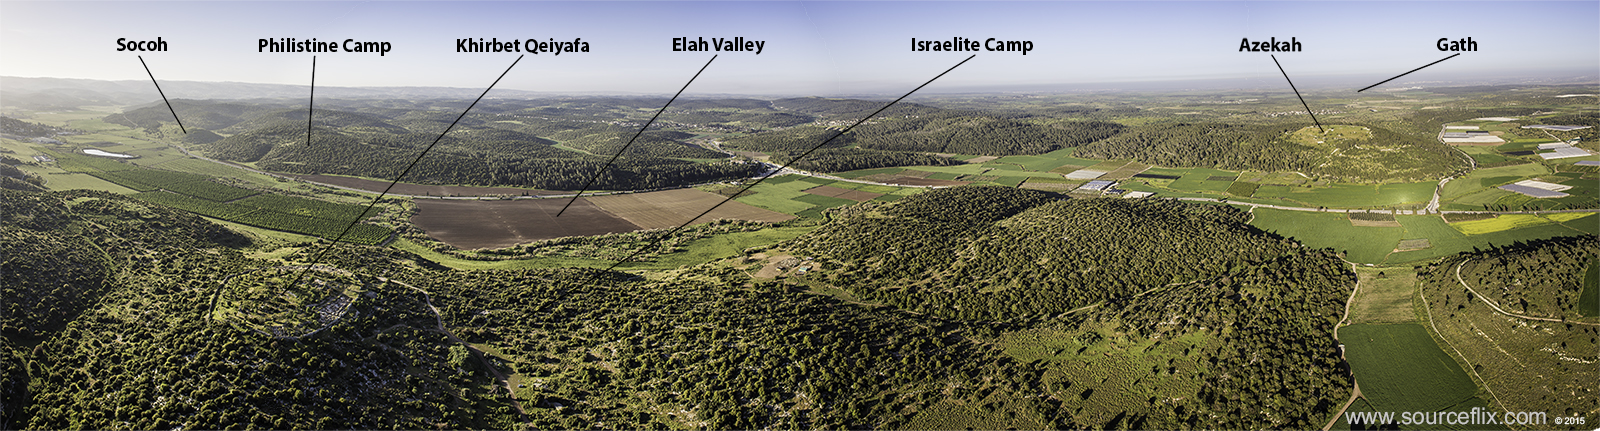 elah-valley-panoramic-web